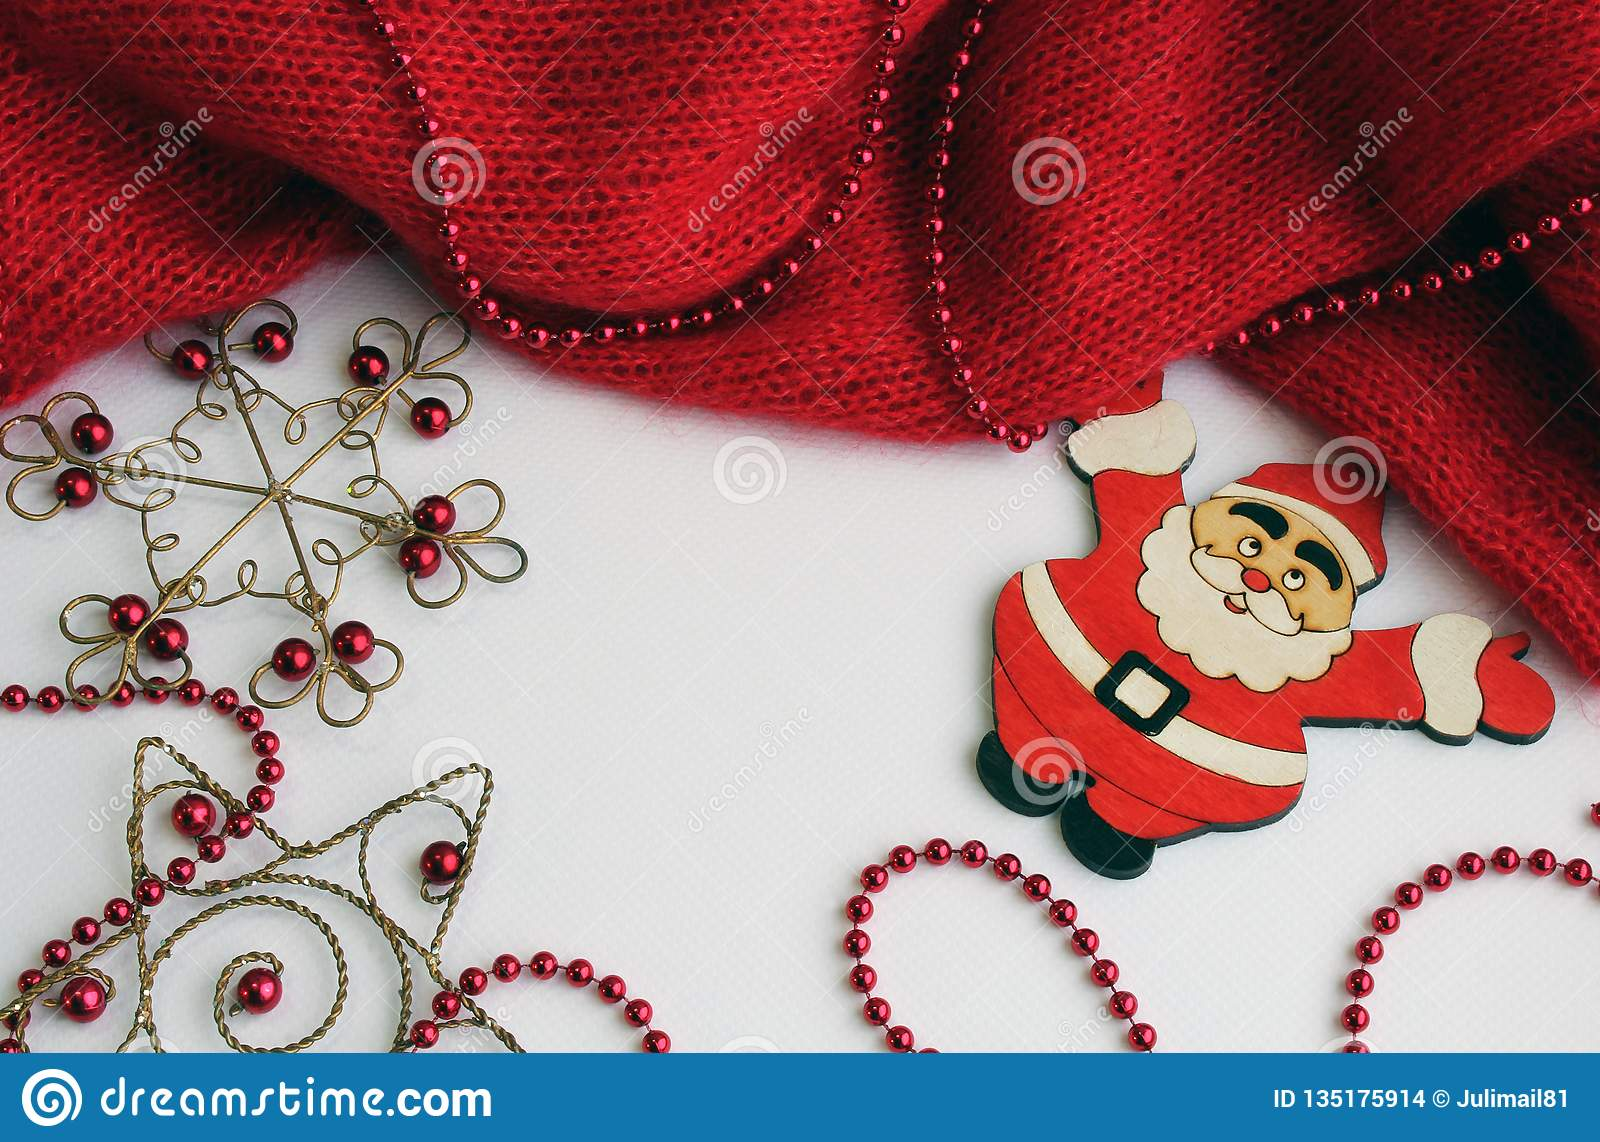 Red knitted piece on a light background with beads of red color. Nearby lies the figure of Santa Claus